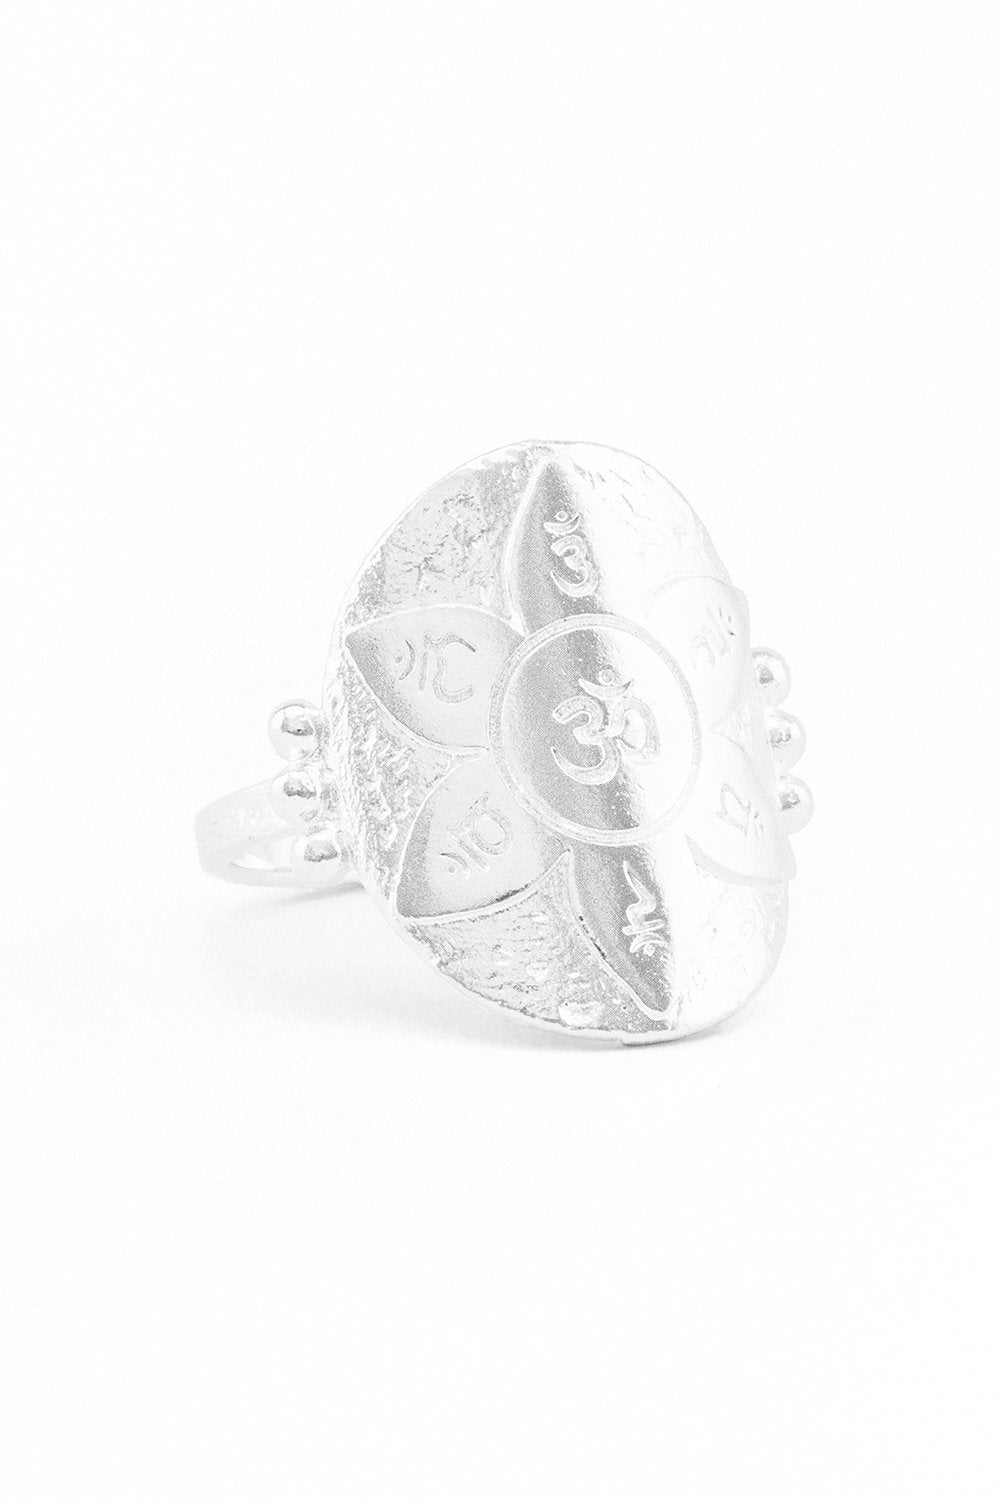 BY CHARLOTTE HARMONY RING SILVER PLATED